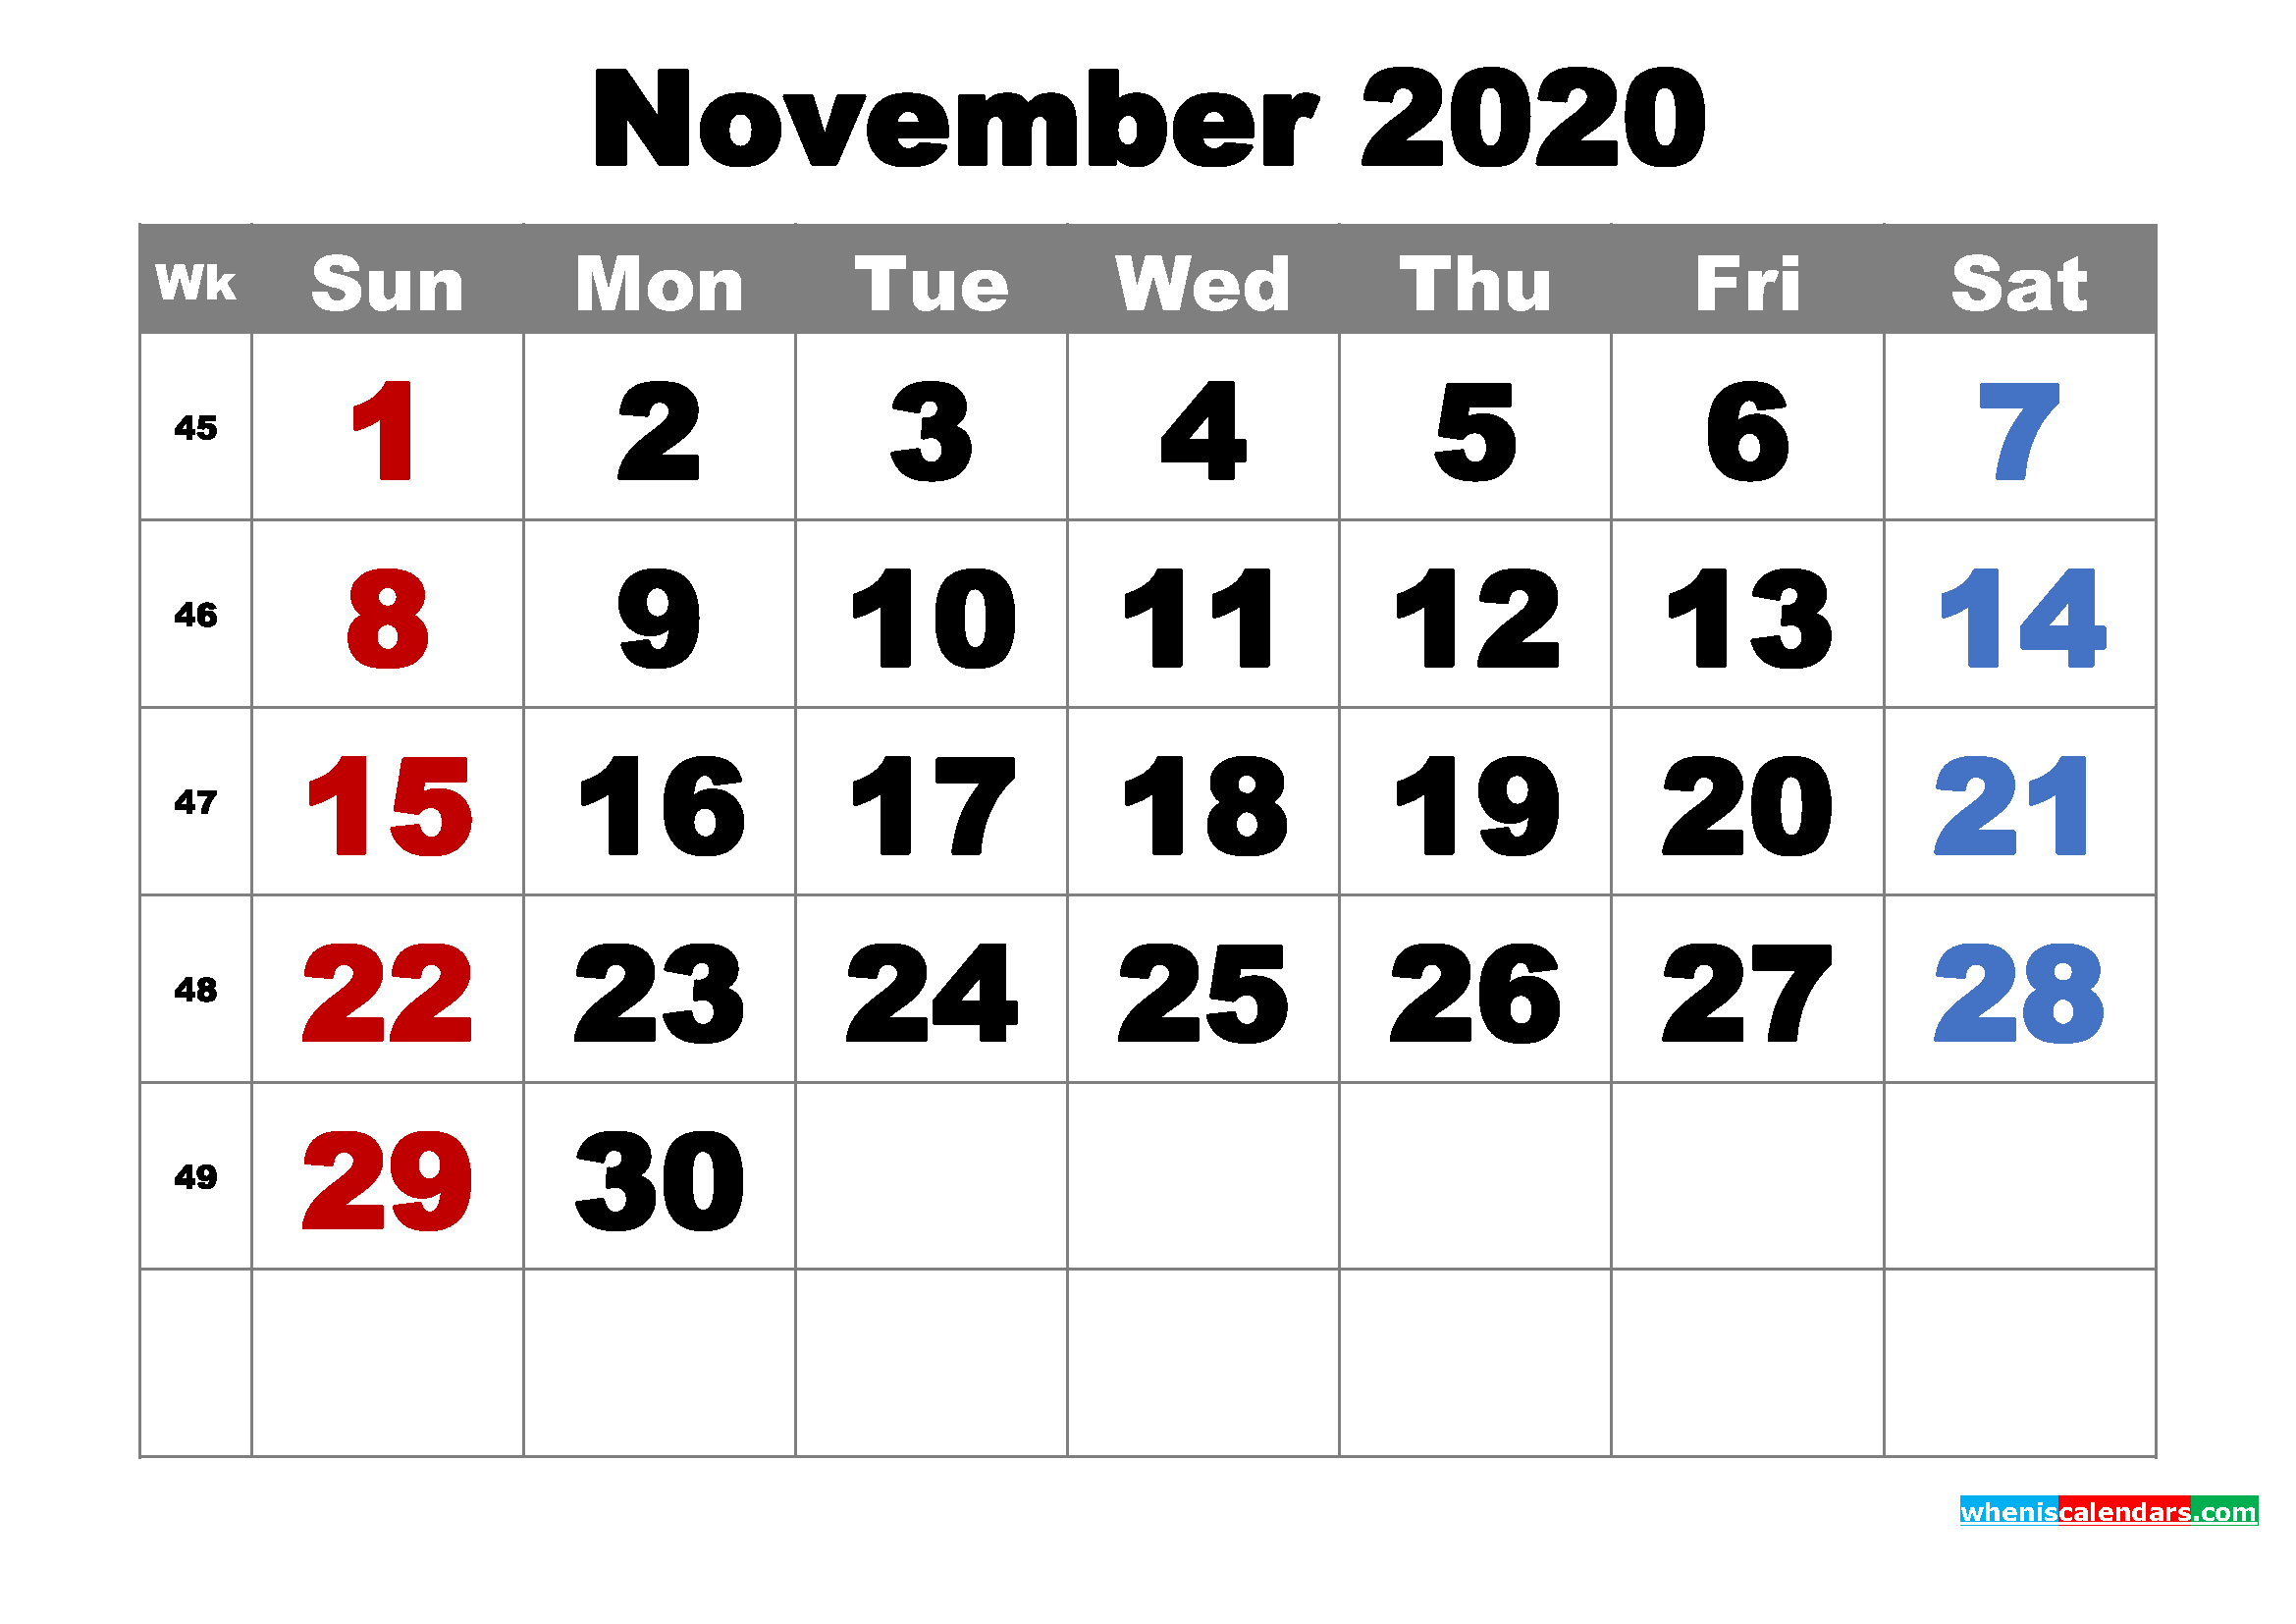 Free Printable November 2020 Calendar Word, PDF, Image